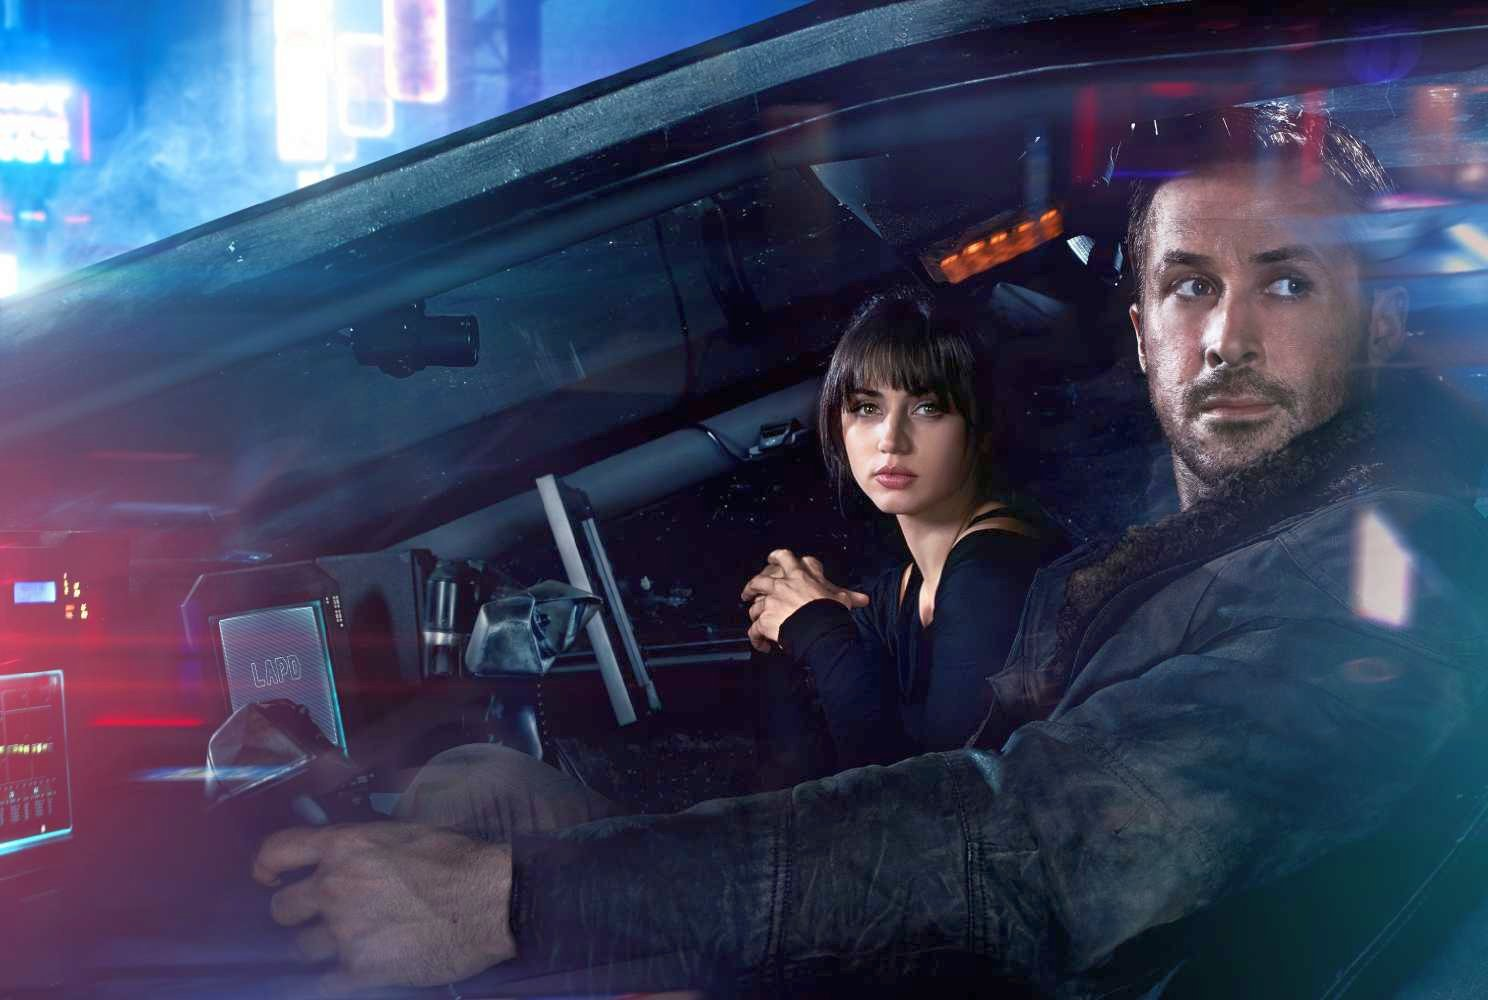 Blade Runner 2049 Trailer Featuring Harrison Ford, Ryan Gosling